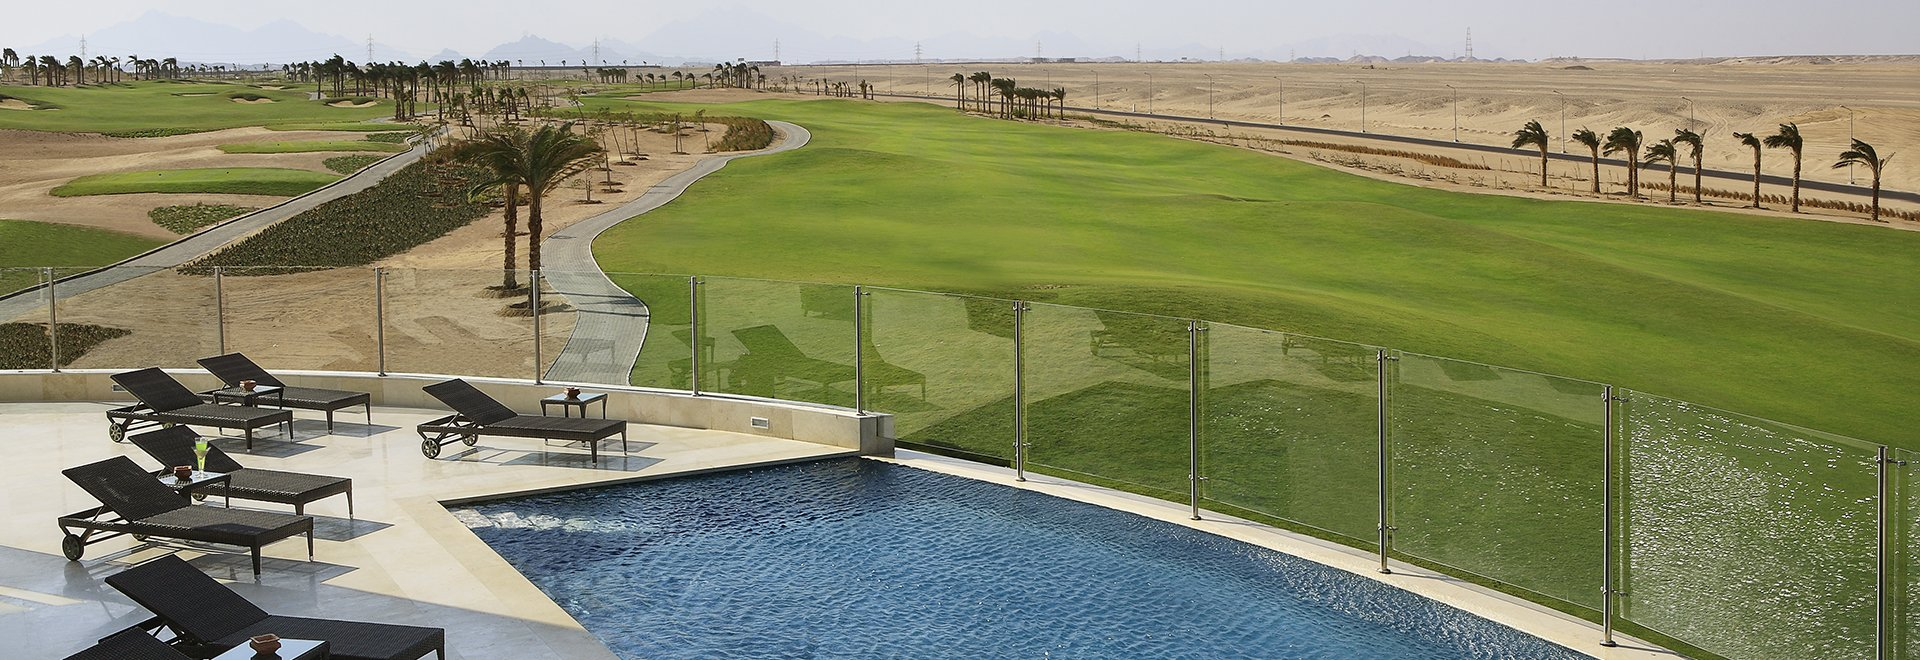 Madinat Makadi Golf on ocean front house designs, view house designs, wheelchair accessible house designs, spanish style house designs, ranch house designs, beach house designs, resort house designs, football field house designs, corner lot house designs, waterfront house designs, lakefront house designs, vaulted ceiling house designs, boat dock house designs, rugby club house designs, pool house designs, country club house designs, drive under house designs, single story house designs, single level house designs, courtyard house designs,